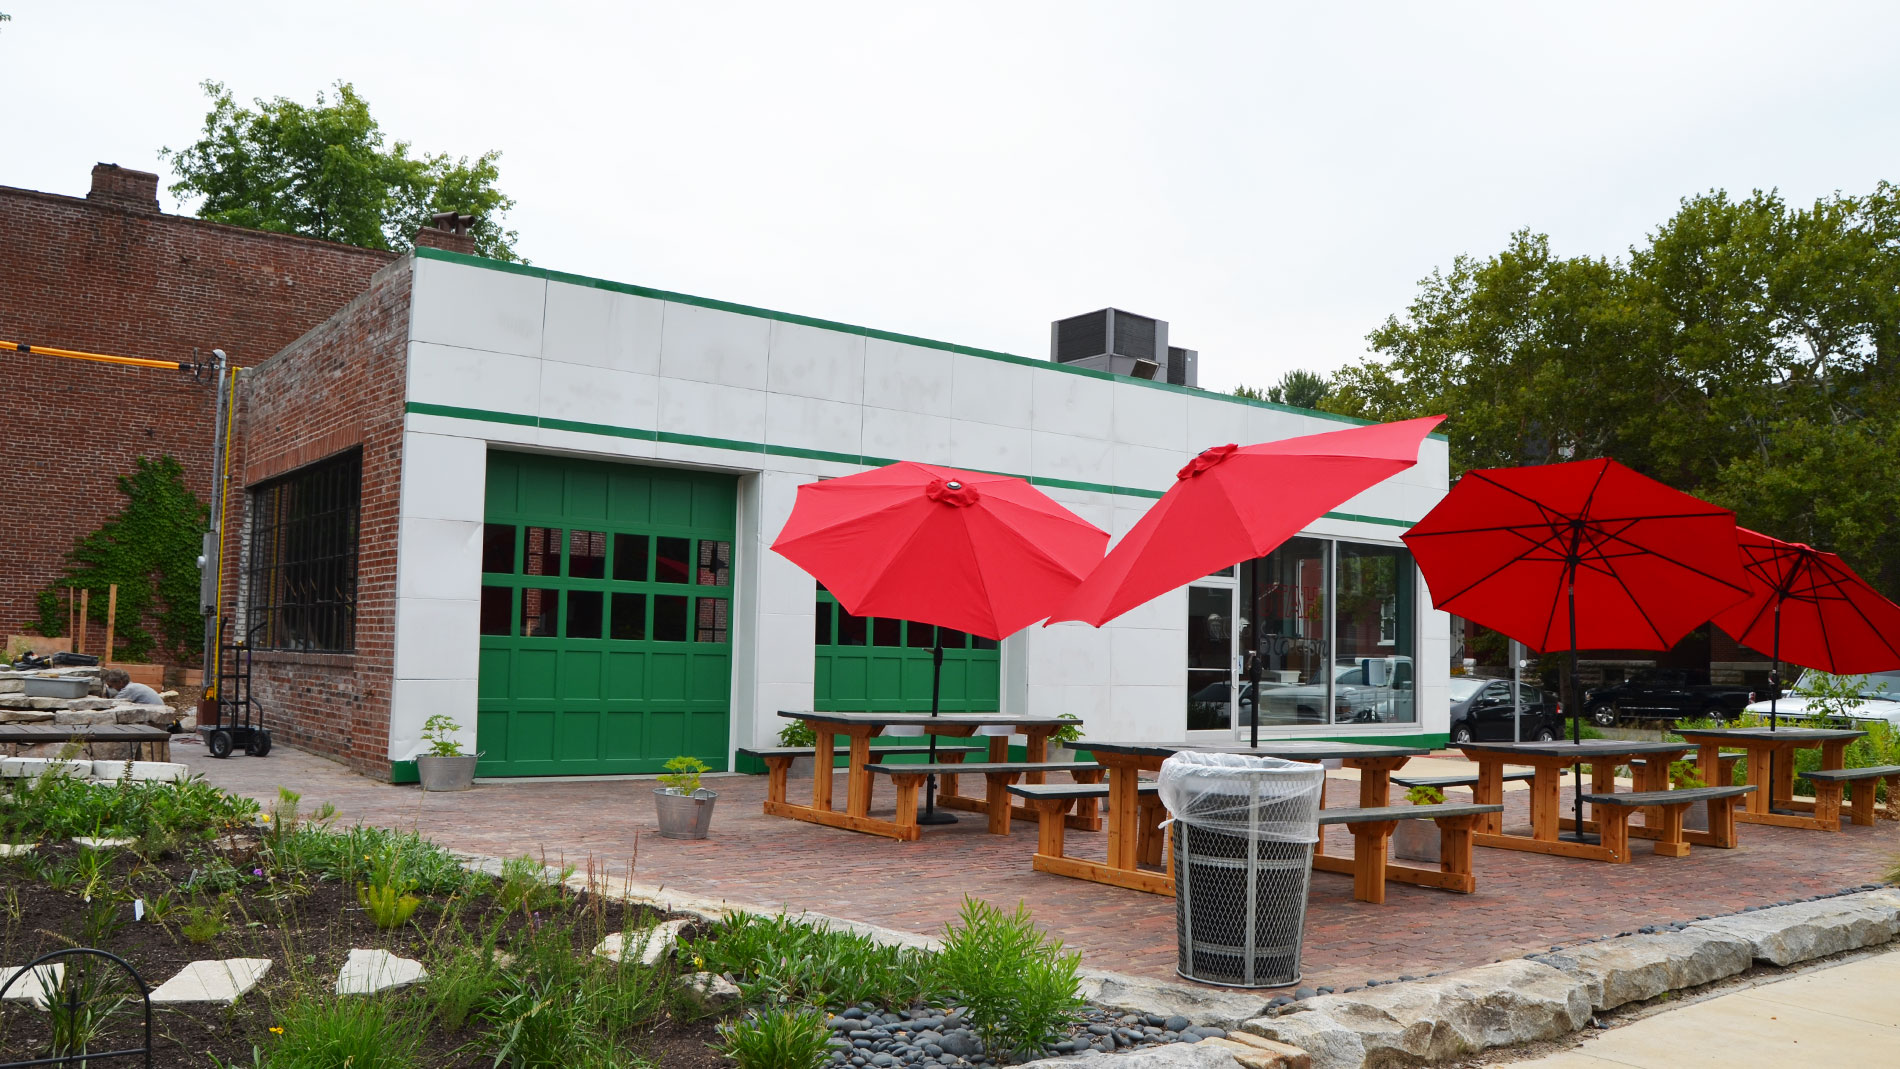 a restaurant patio with red umbrellas